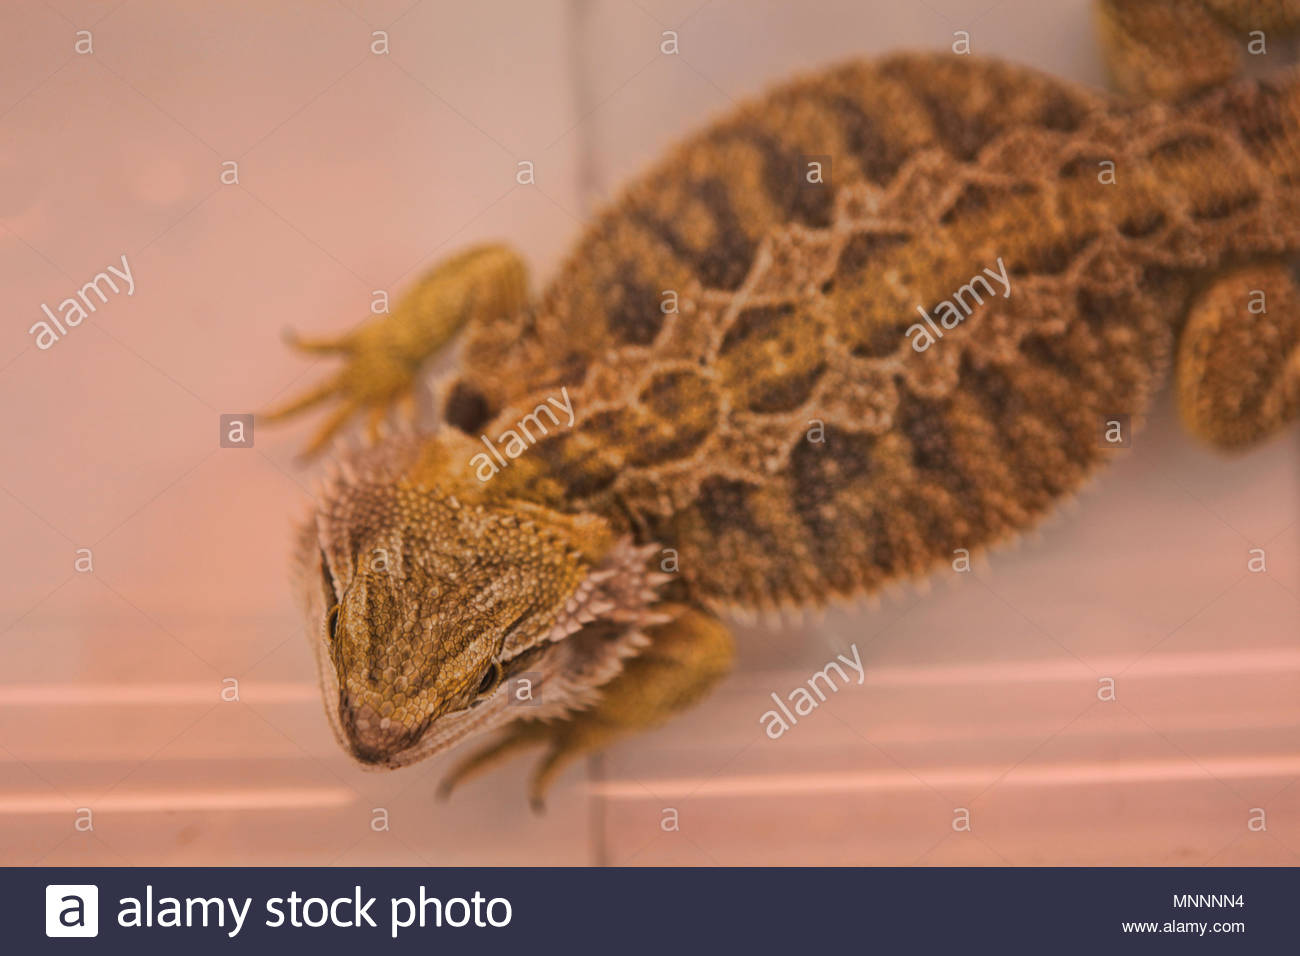 Bearded Dragon Photo Stock Photos & Bearded Dragon Photo